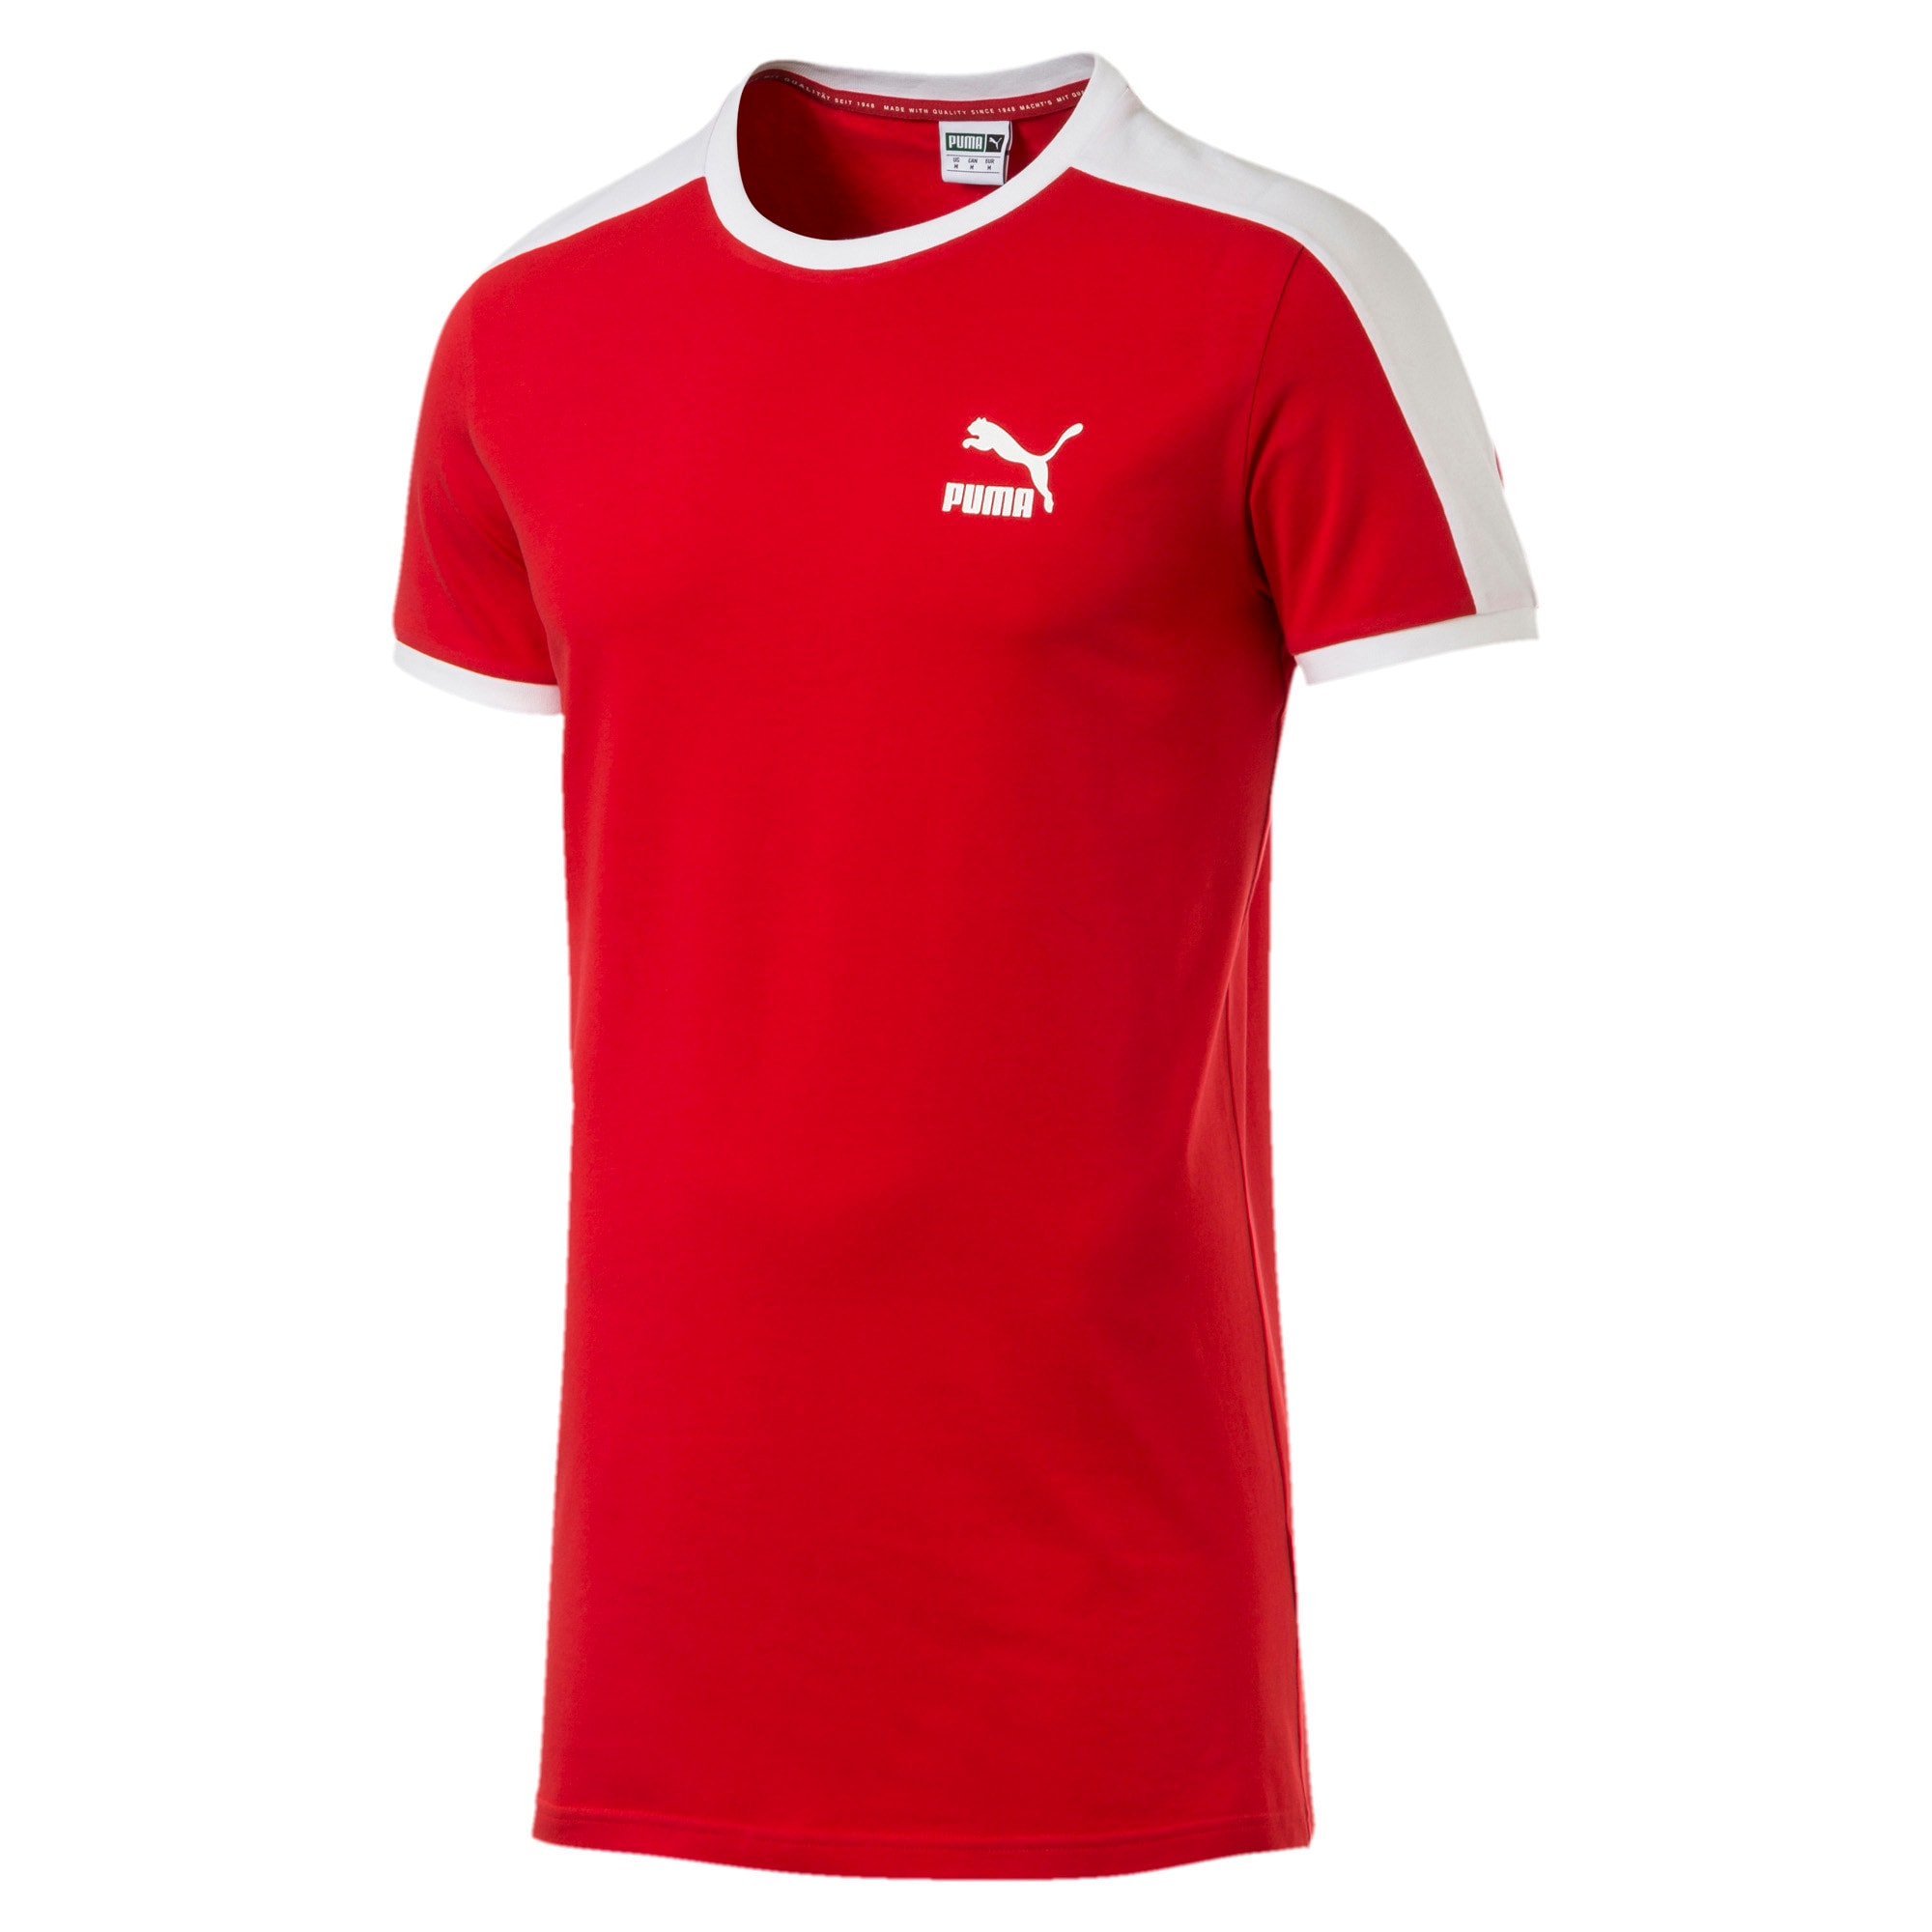 Thumbnail 4 of Iconic T7 Slim Men's Tee, High Risk Red, medium-IND